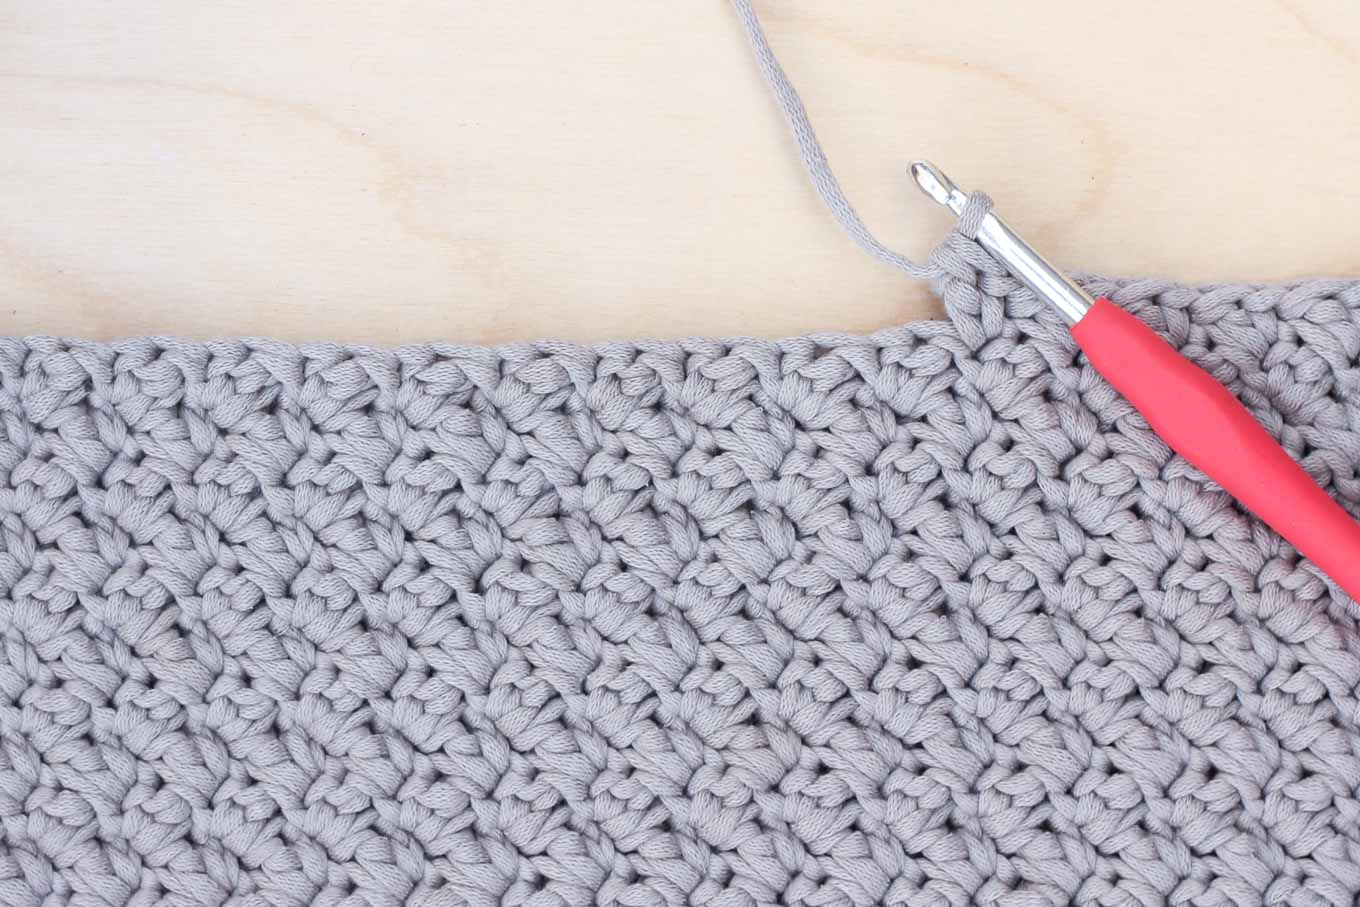 How To Crochet A Blanket video tutorial: how to crochet the suzette stitch from make and do crew. rwvpyhy